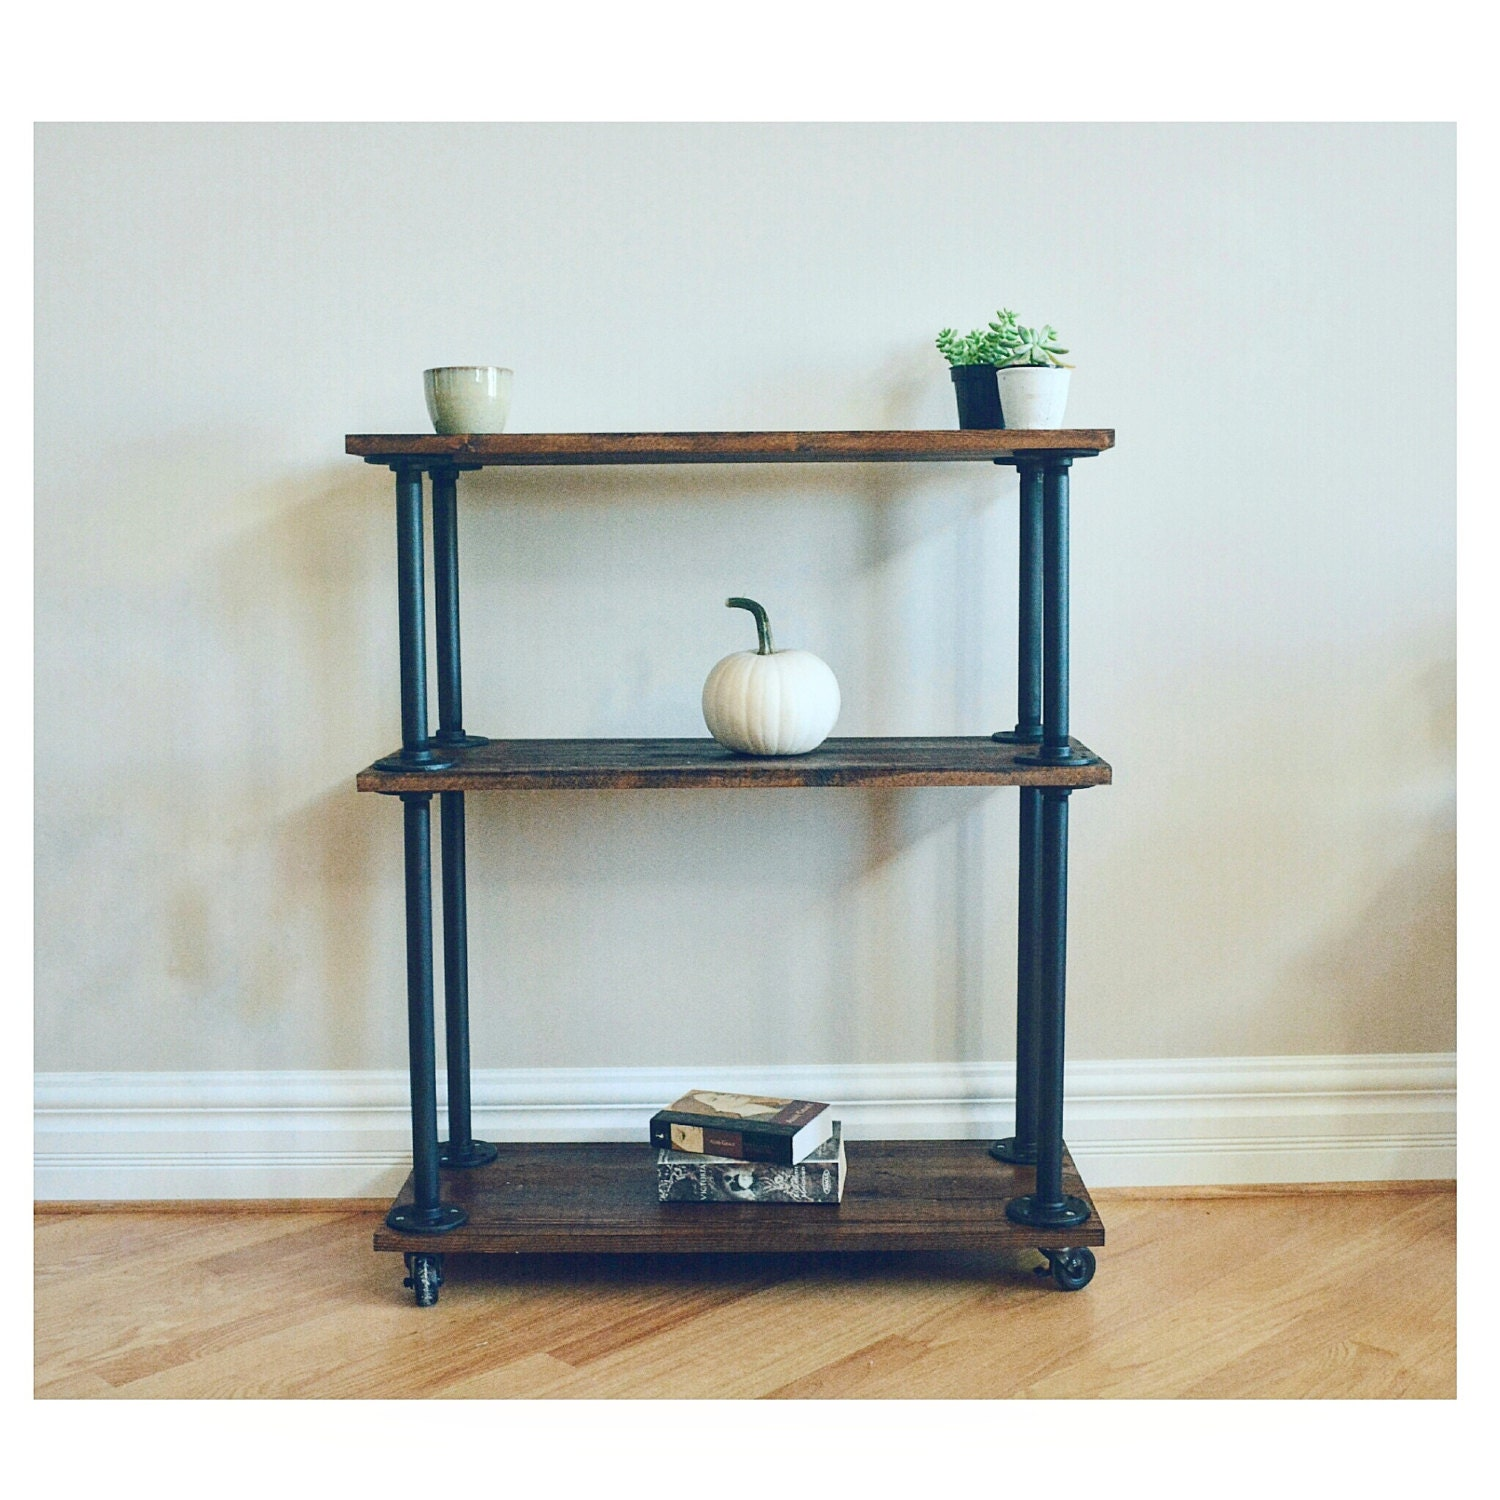 Pipe Shelf Kitchen: Kitchen Bar Cart / Book Shelf Pipe And Wood By LisaMTerry